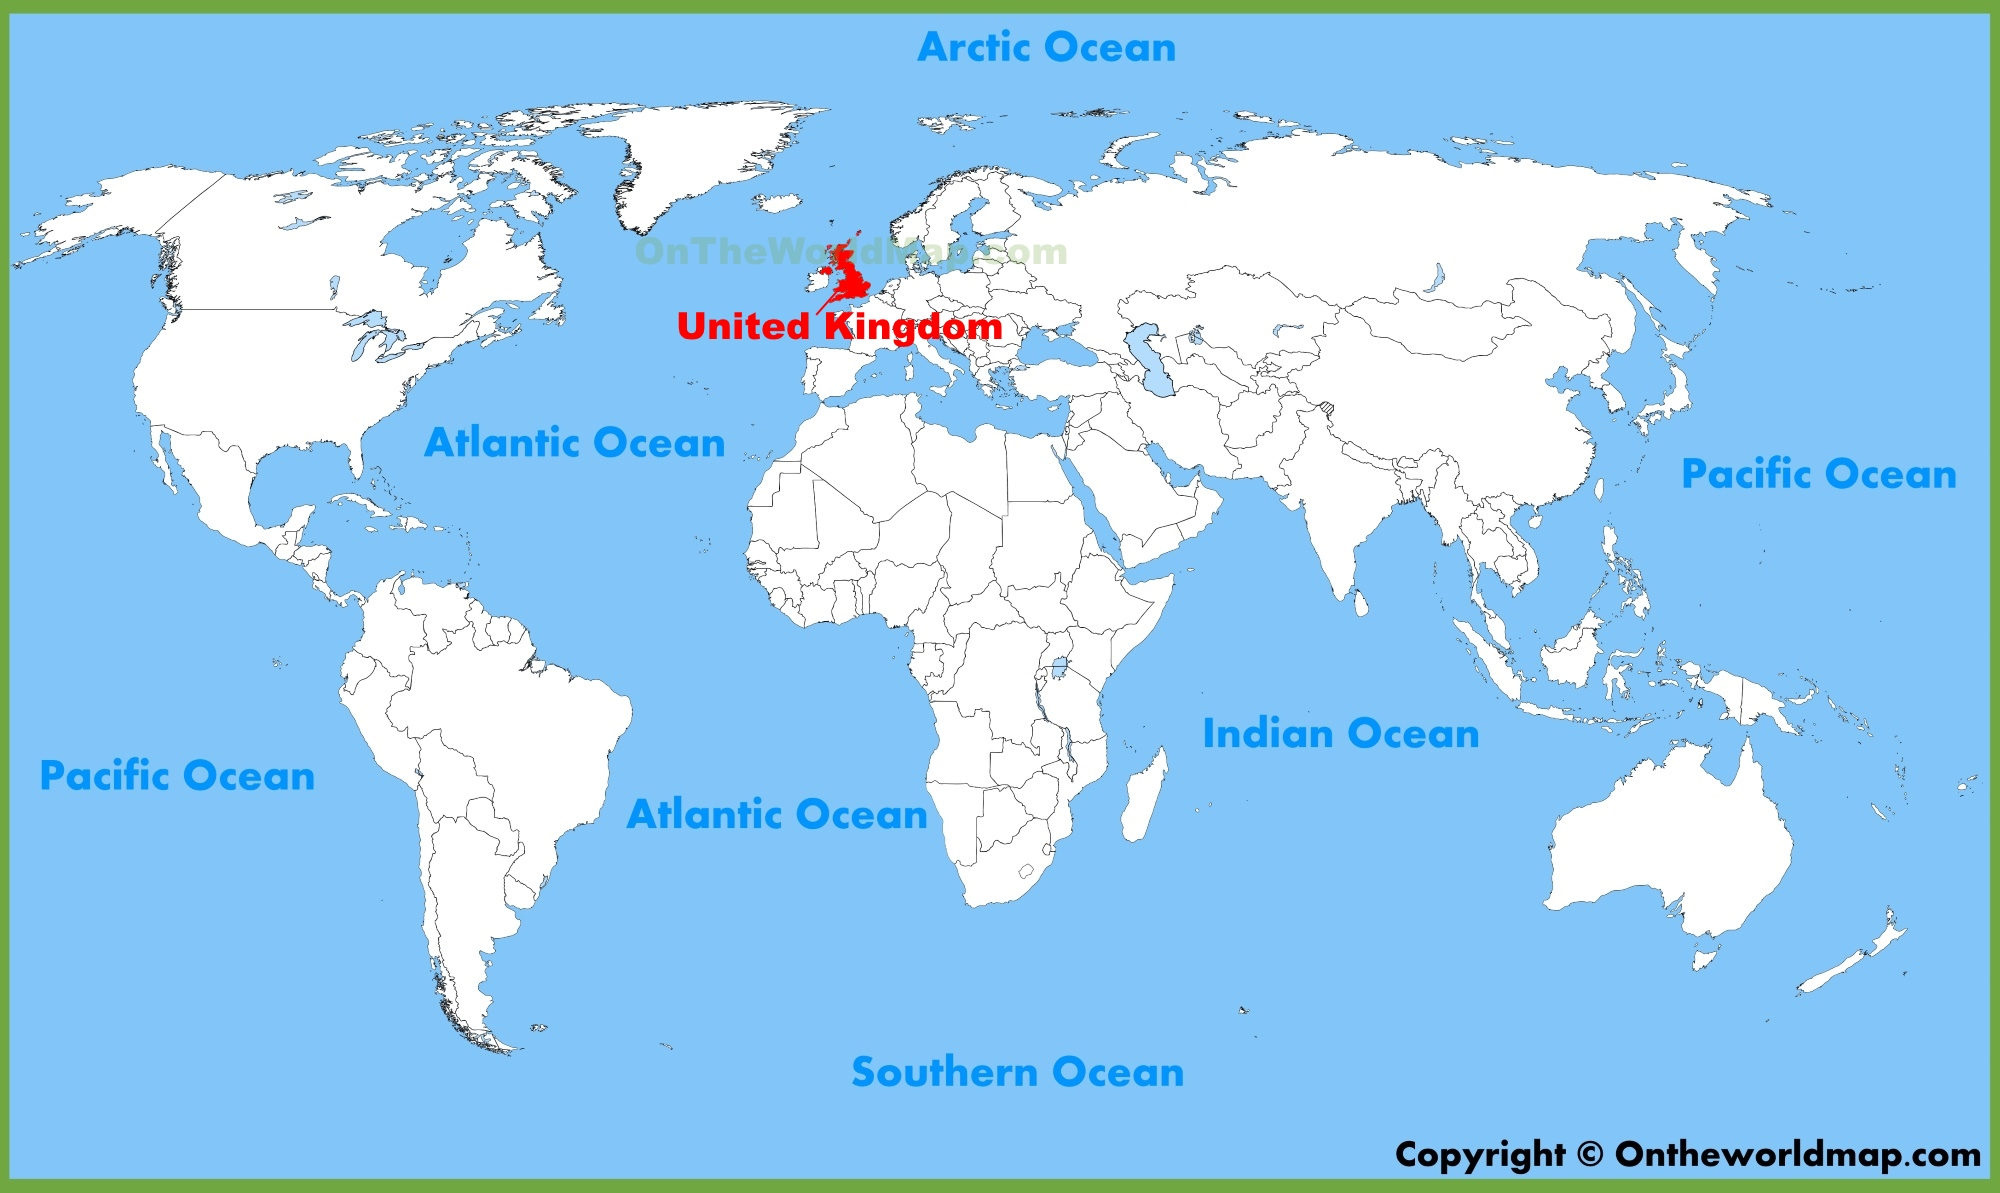 uk location on world map United Kingdom Uk Location On The World Map